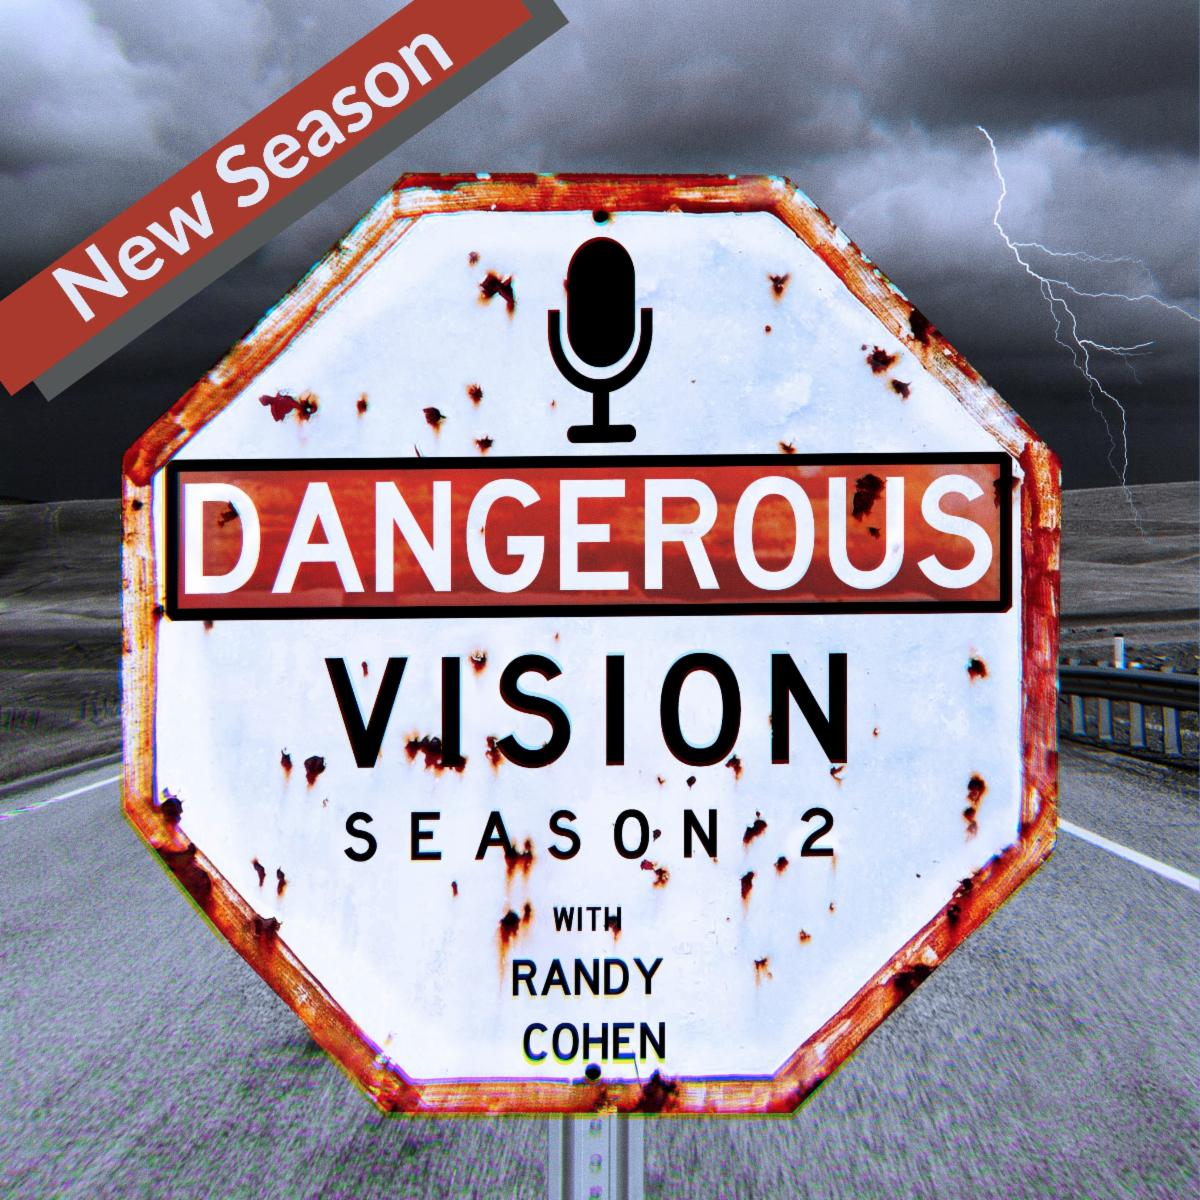 Image: white street sign shaped like a stop sign. Text on sign Dangerous Vision Season 2 with Randy Cohen. Banner says: New Season